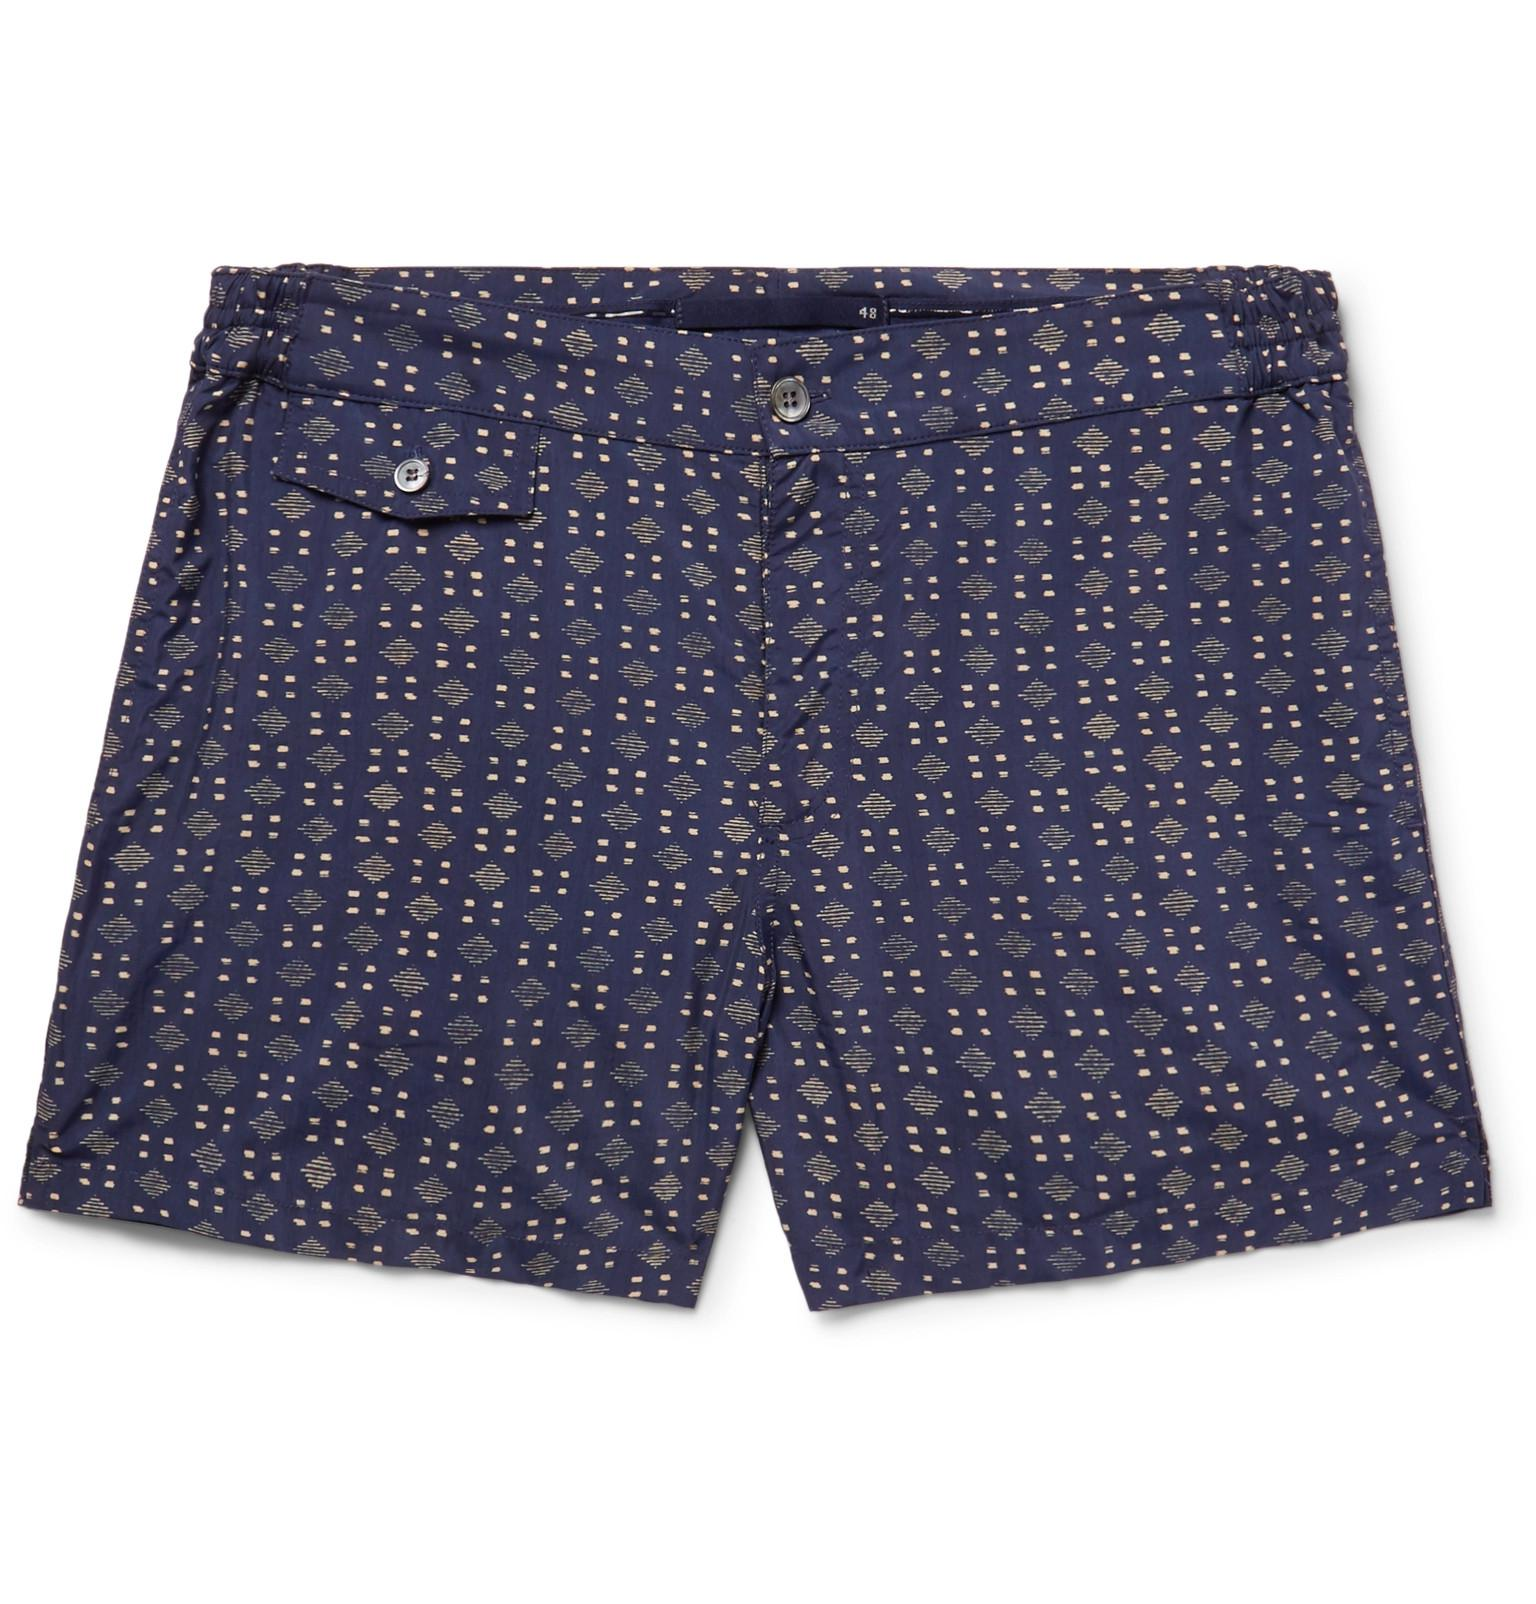 Incotex Slim-fit Short-length Printed Swim Shorts - Multi bqUC1e8YFF